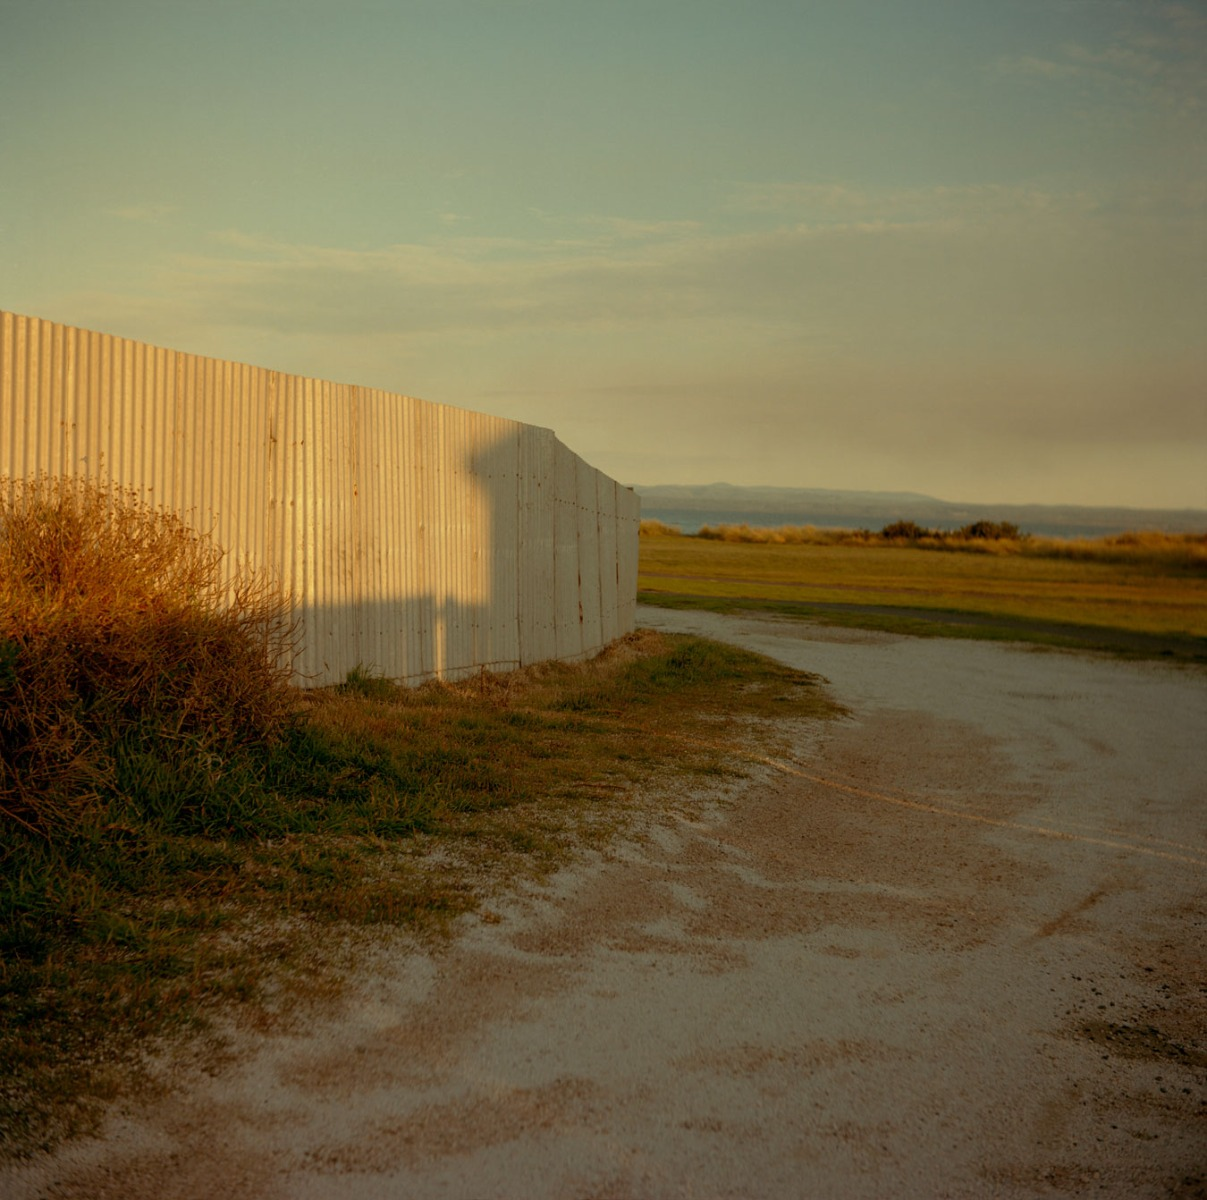 afternoon-light-casts-a-house-shaped-shadow-on-an-iron-fence-in-rural-australia